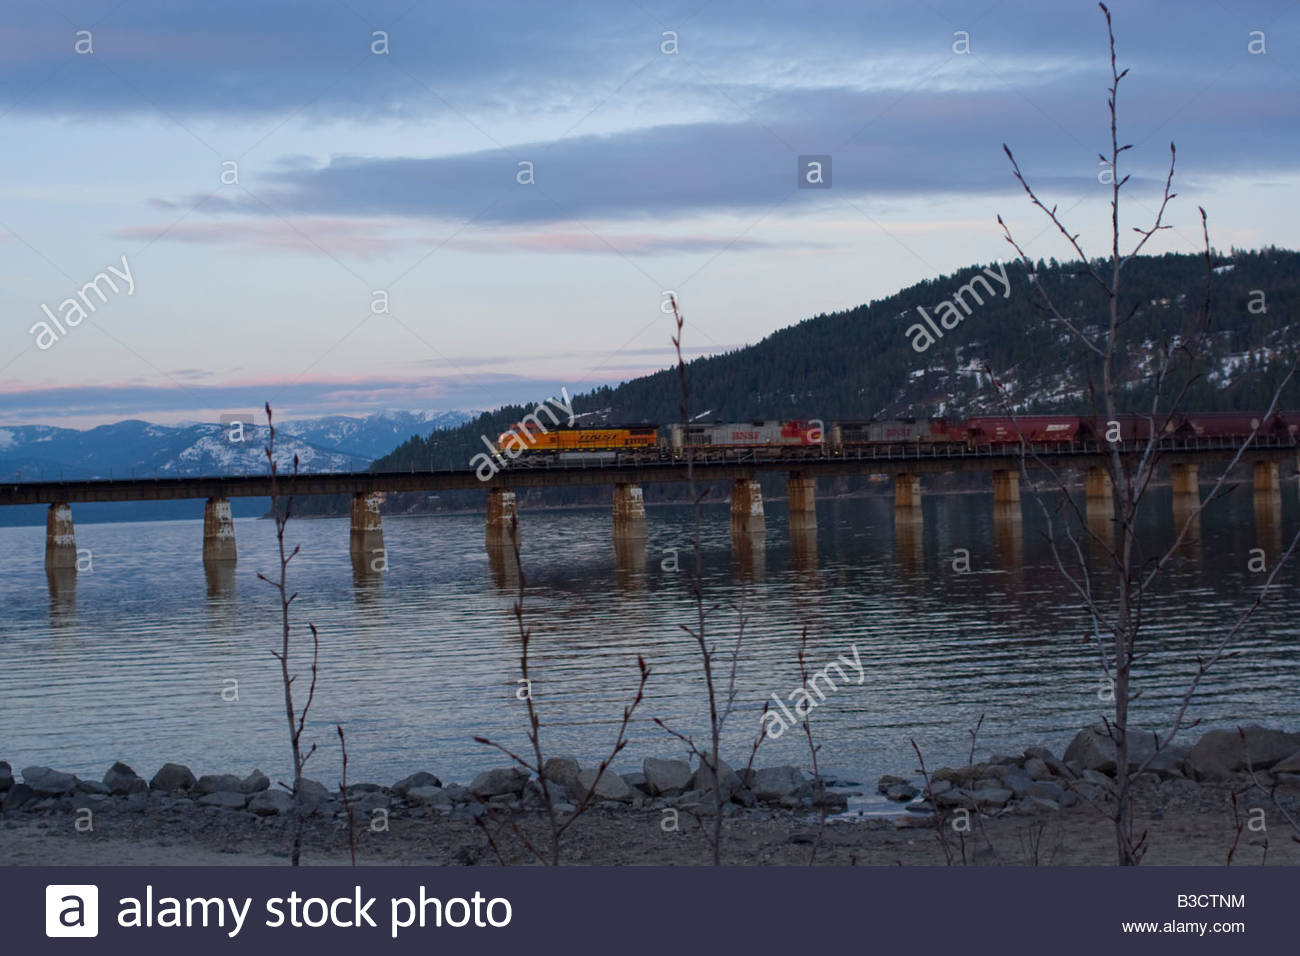 A train seen crossing the 8000 foot long BNSF Railroad bridge on Lake Pend Oreille at Sandpoint Idaho - Stock Image